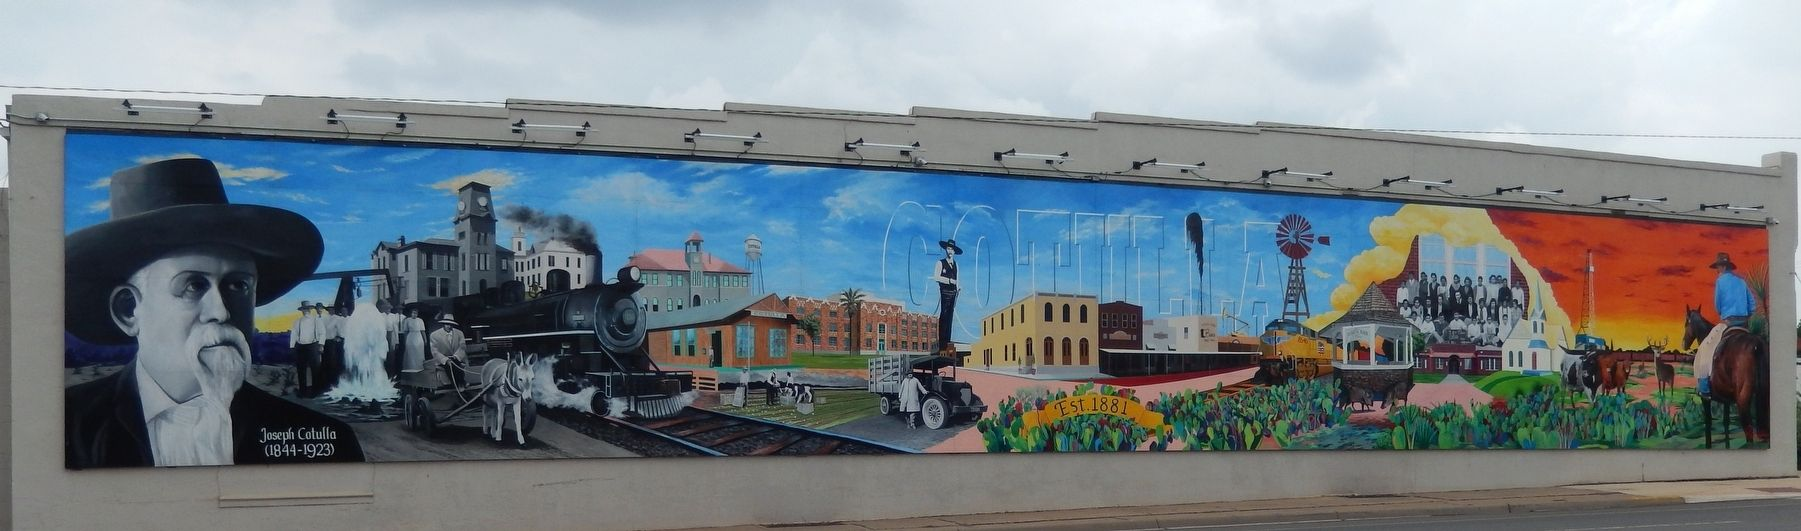 Joseph Cotulla Mural (<i>covers entire west wall of building across Main Street from marker</i>) image. Click for full size.